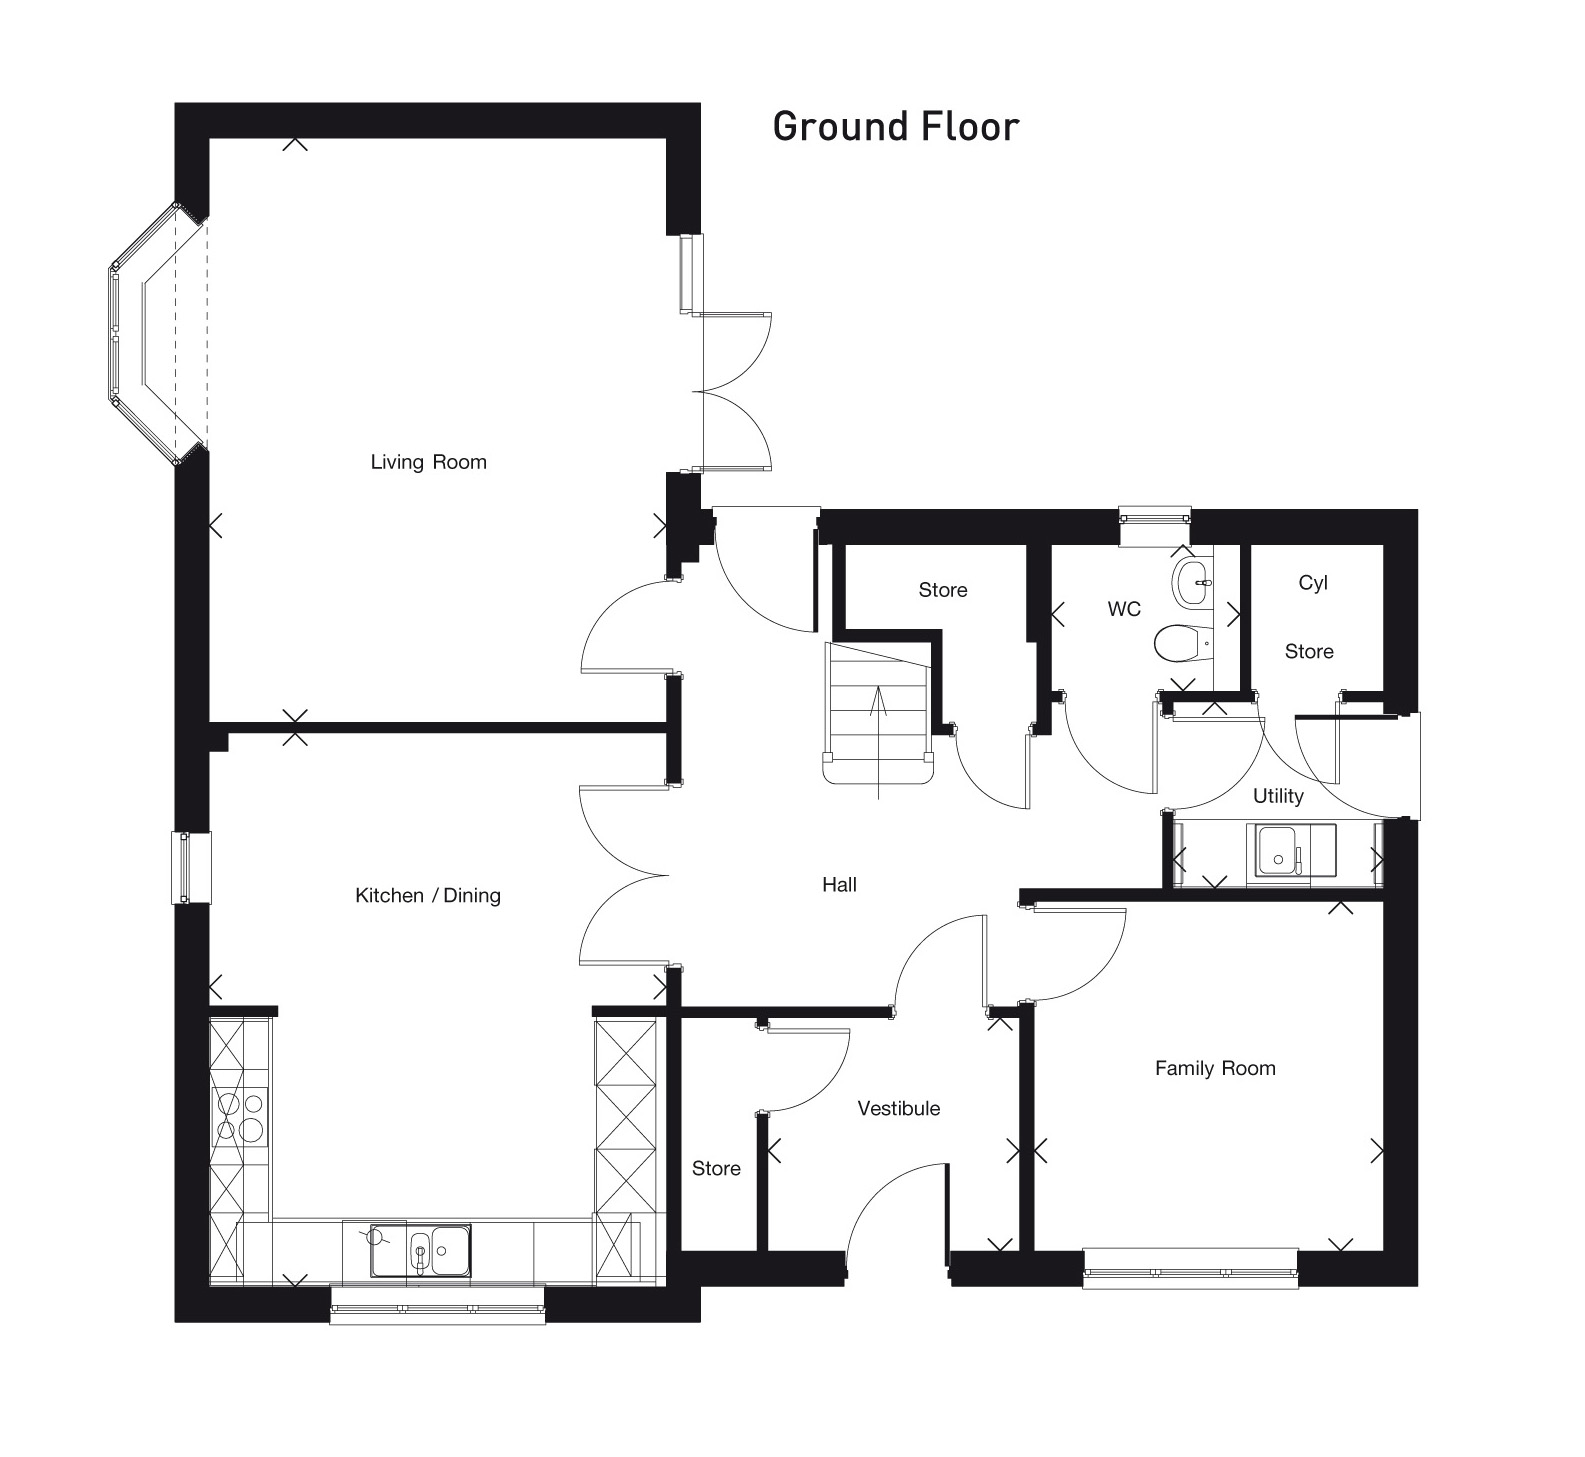 The Ferrey Ground Floor